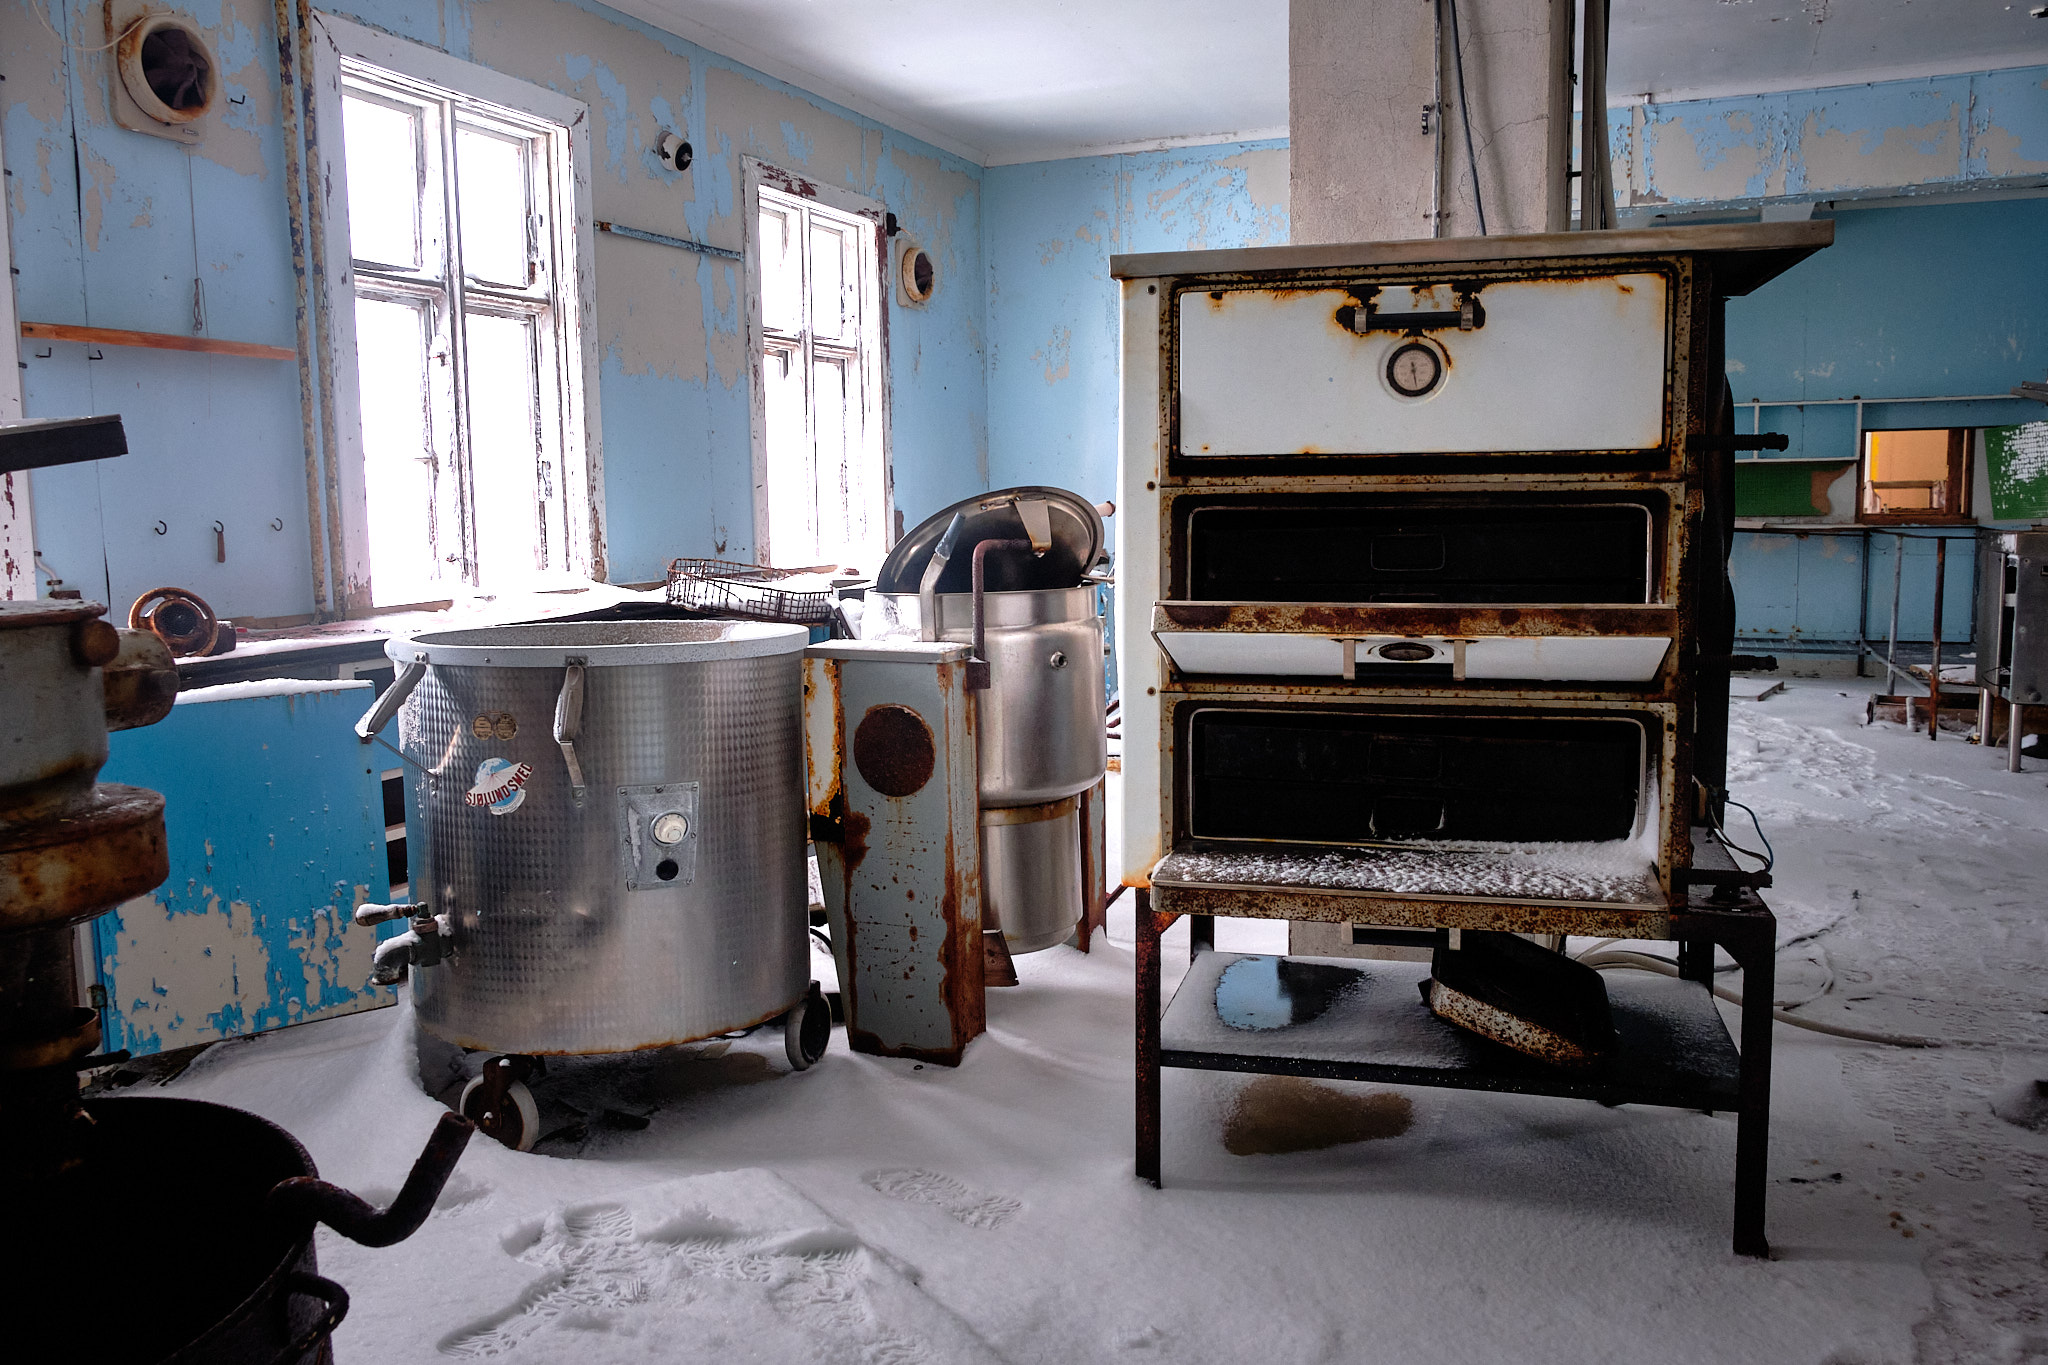 Inside Seamens home kitchen - Nordafar Abandoned fish factory near Nuuk